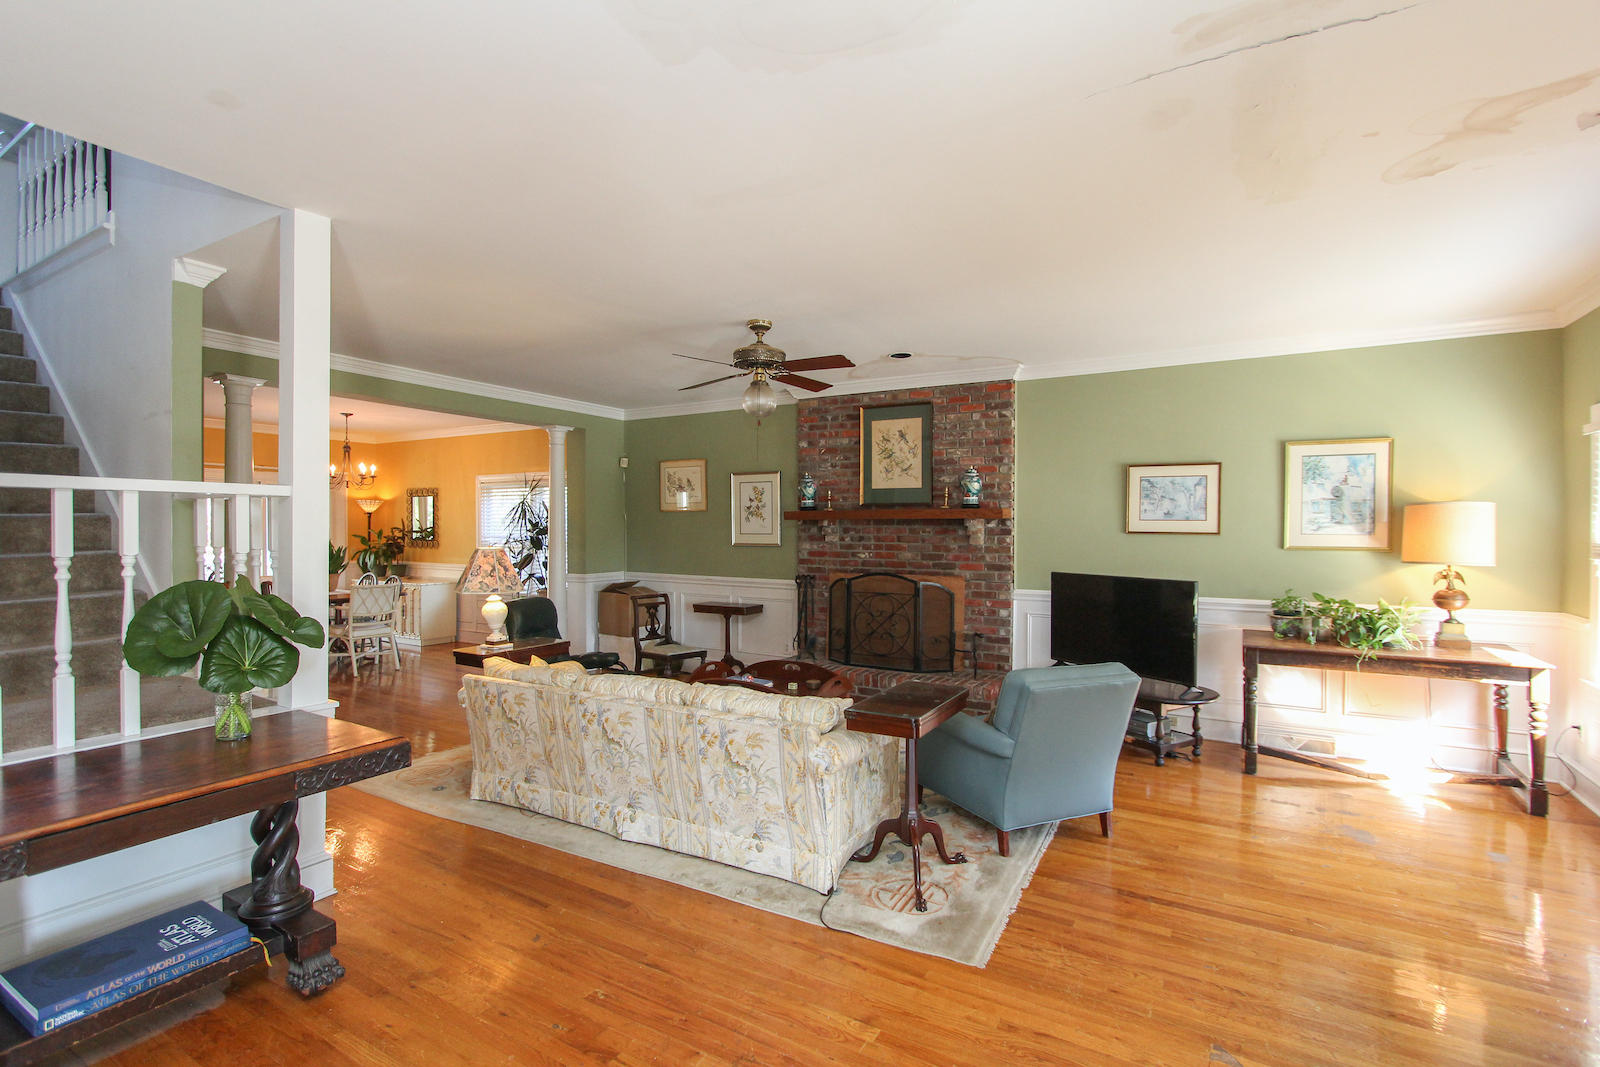 Old Village Homes For Sale - 217 William Street Extension, Mount Pleasant, SC - 20